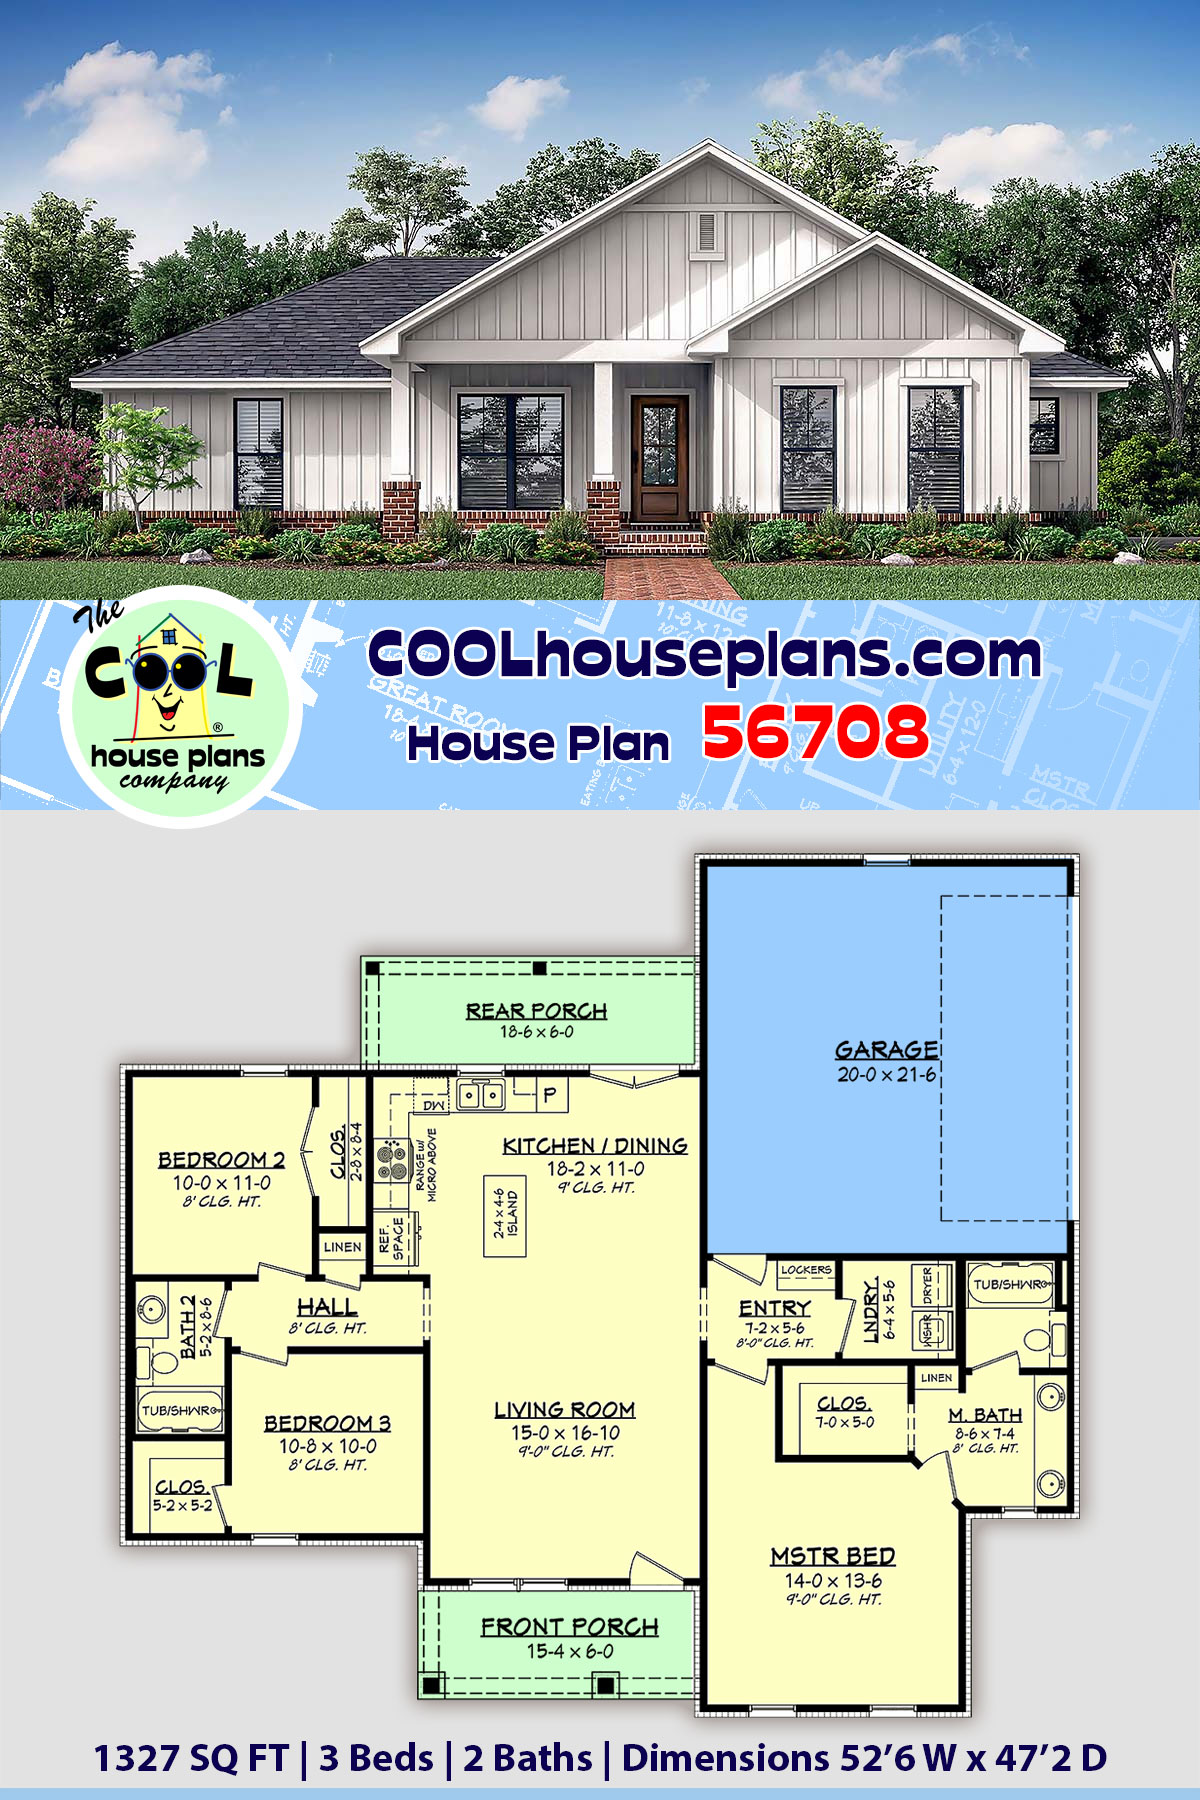 Country, Craftsman, Farmhouse, Traditional House Plan 56708 with 3 Beds, 2 Baths, 2 Car Garage